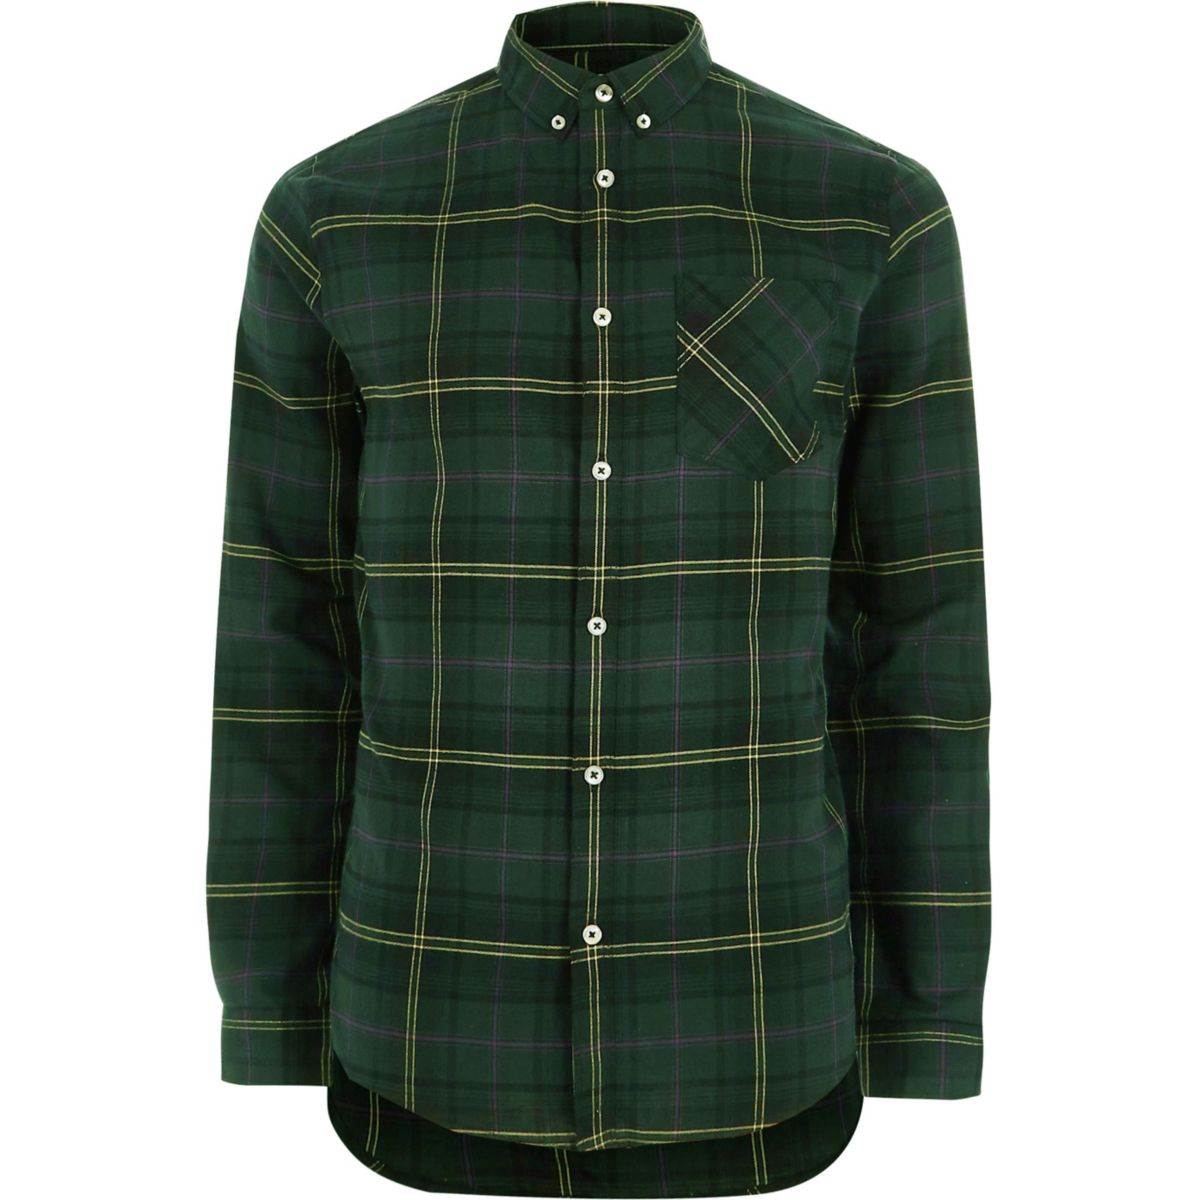 Dark green casual check shirt